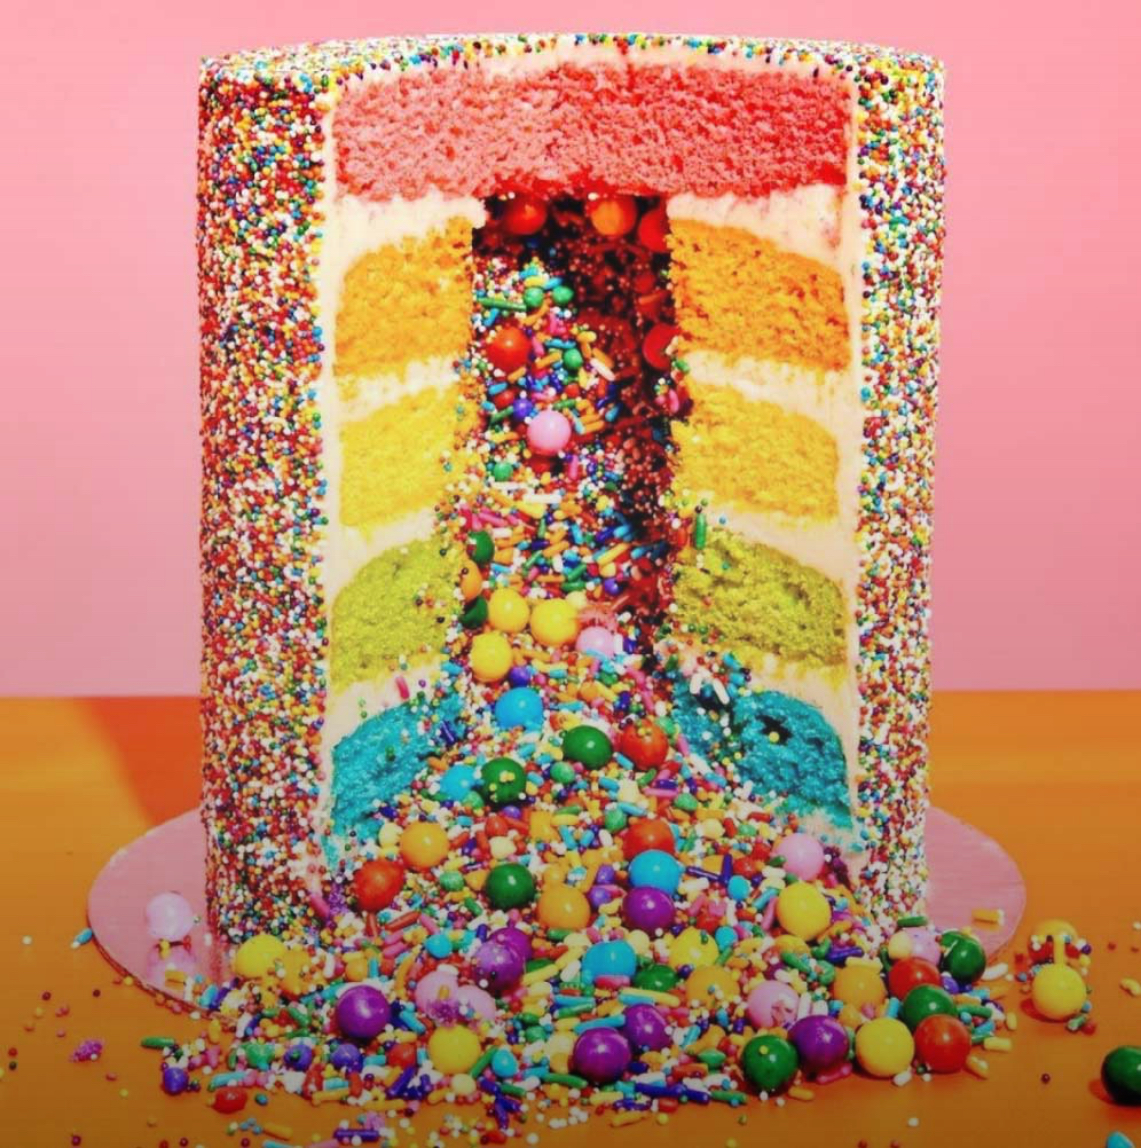 A colorful six-layer cake covered with colorful sprinkles with a slice cut out and colorful candies and sprinkles spilling out of the middle from the Flour Shop in Beverly Hills, CA.